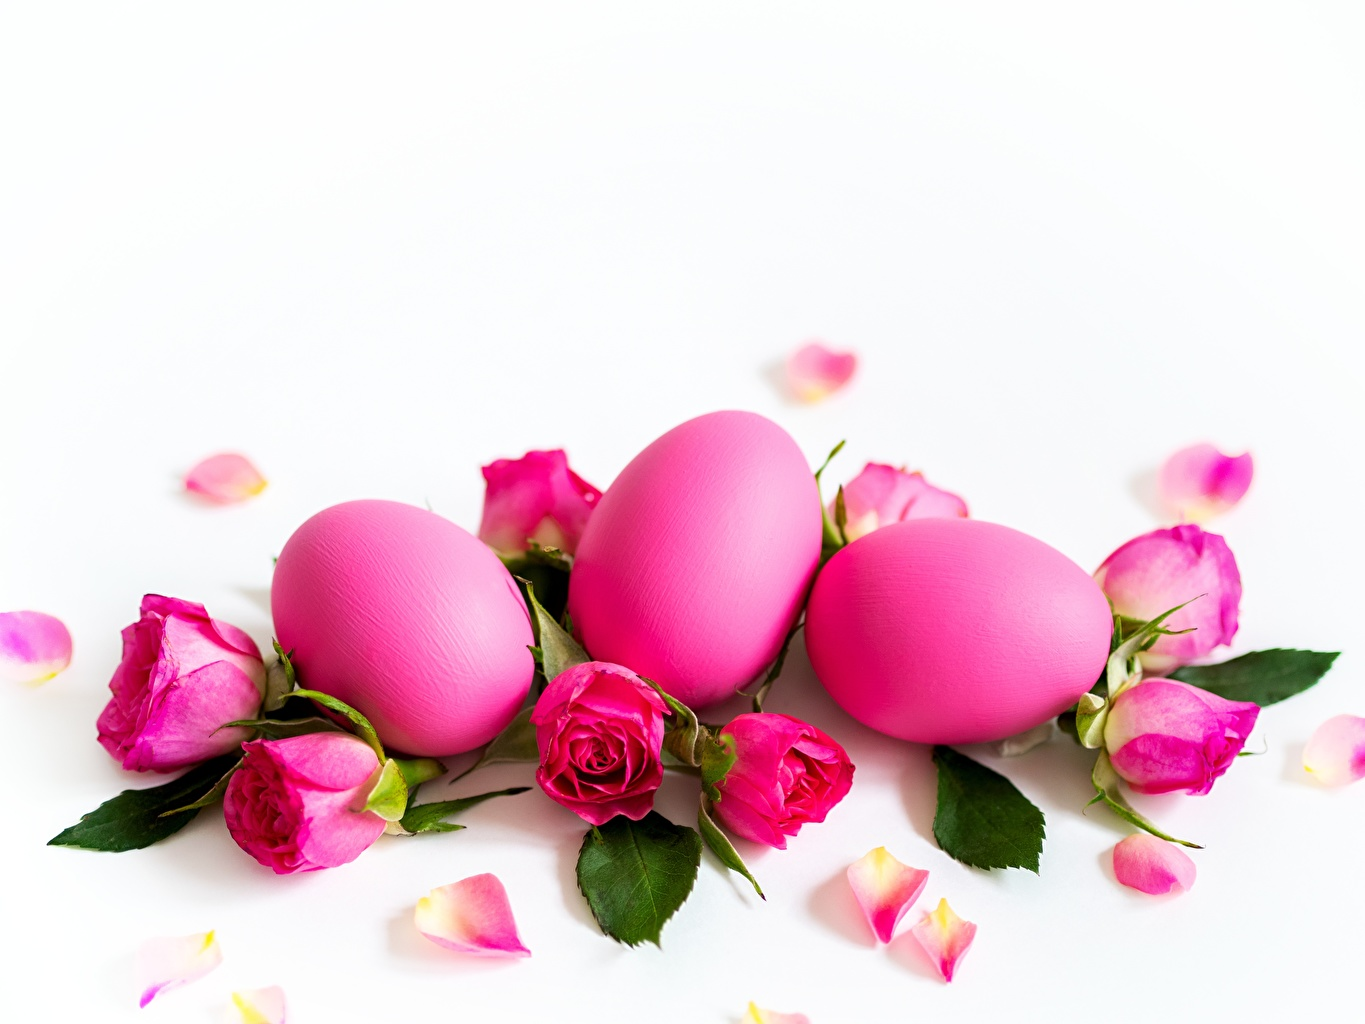 Desktop Wallpapers Easter Eggs Rose Pink Color Flower White